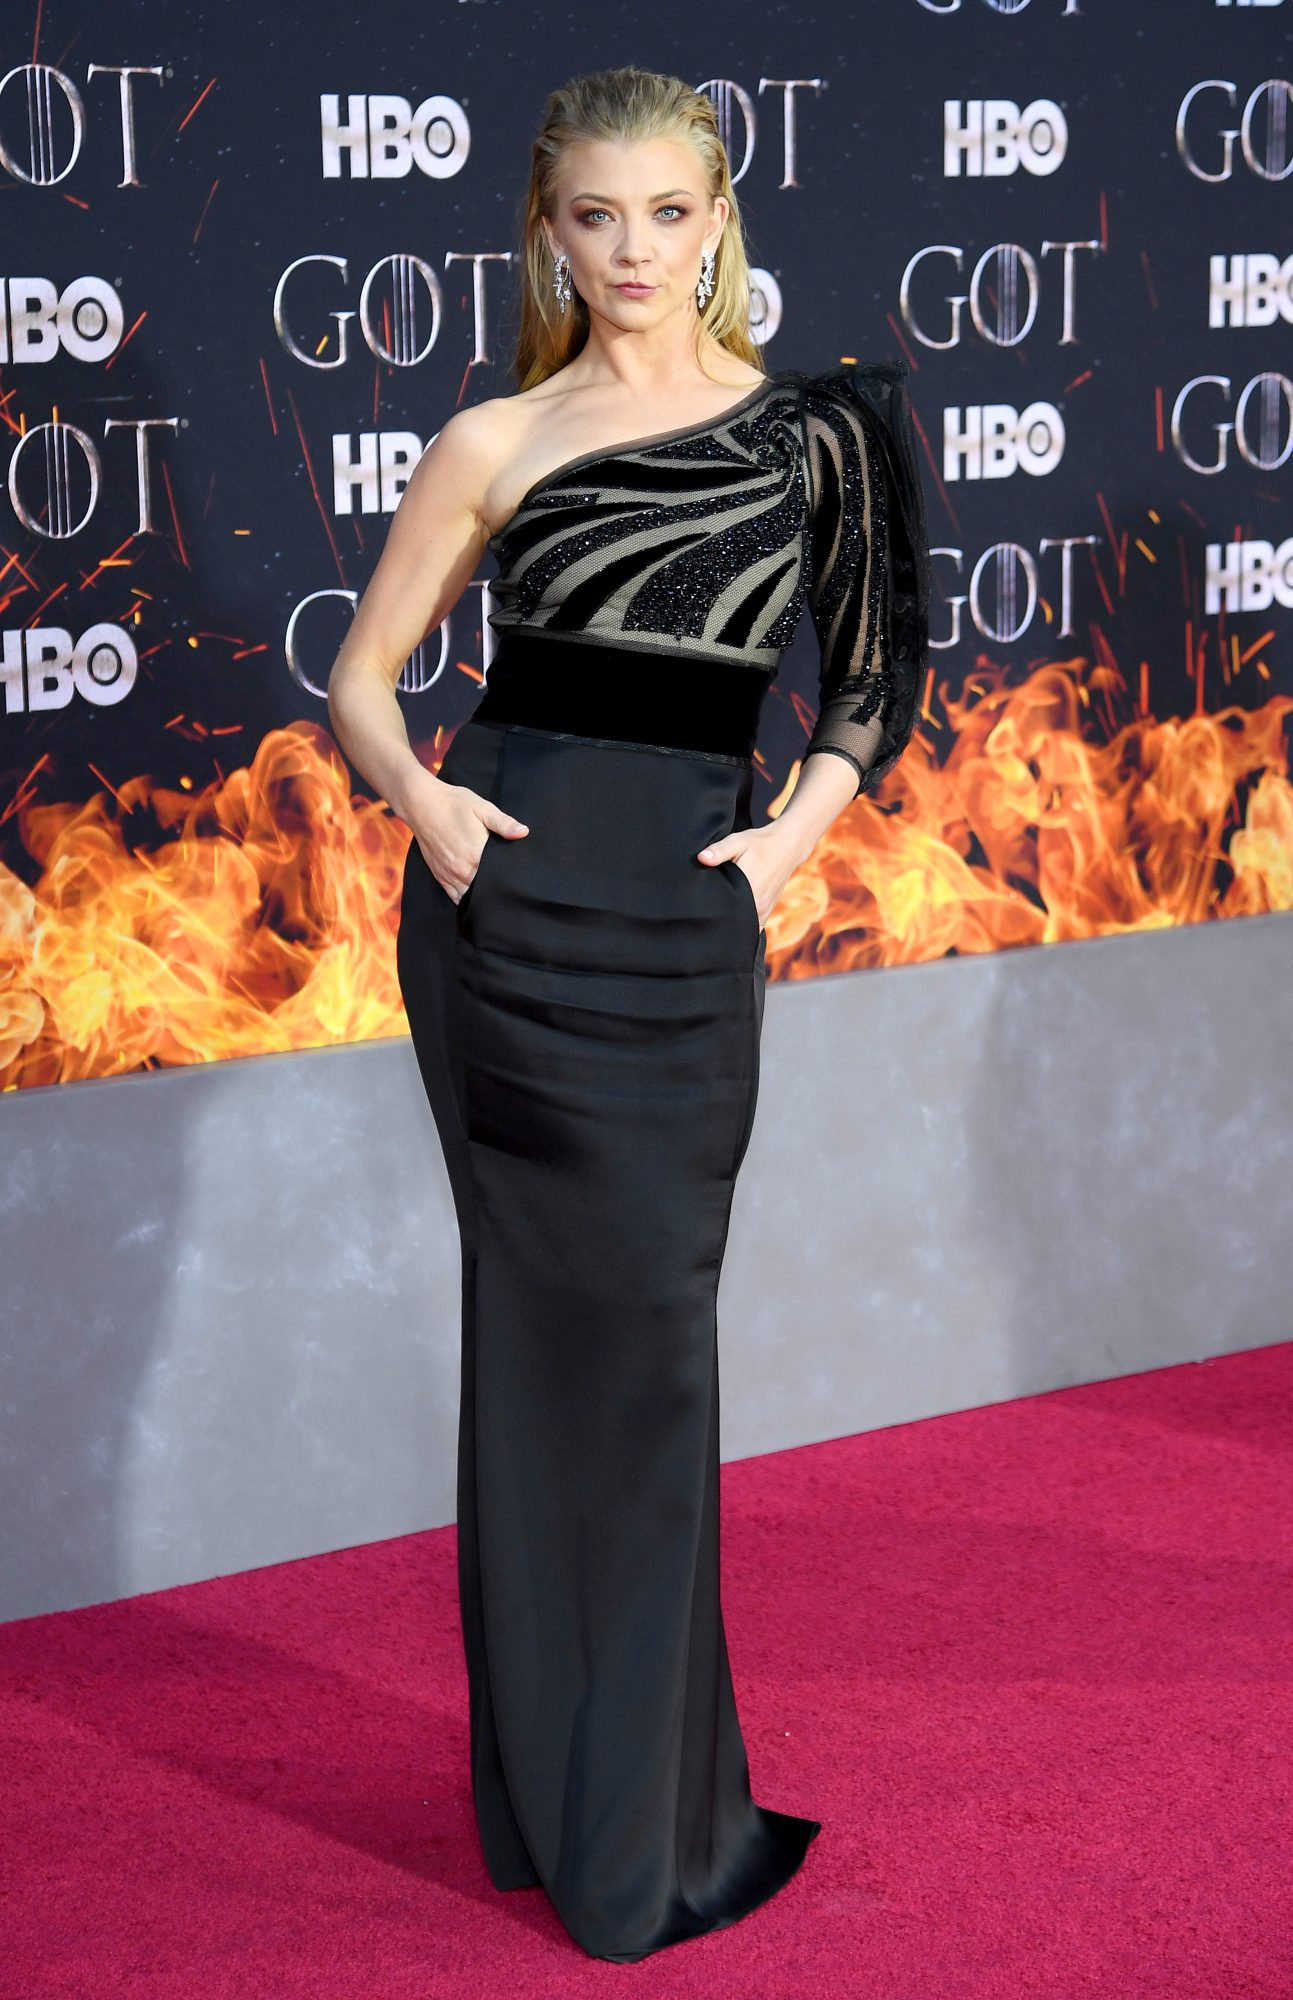 """NEW YORK, NEW YORK - APRIL 03: Natalie Dormer attends the """"Game Of Thrones"""" Season 8 Premiere on April 03, 2019 in New York City. (Photo by Dimitrios Kambouris/Getty Images)"""